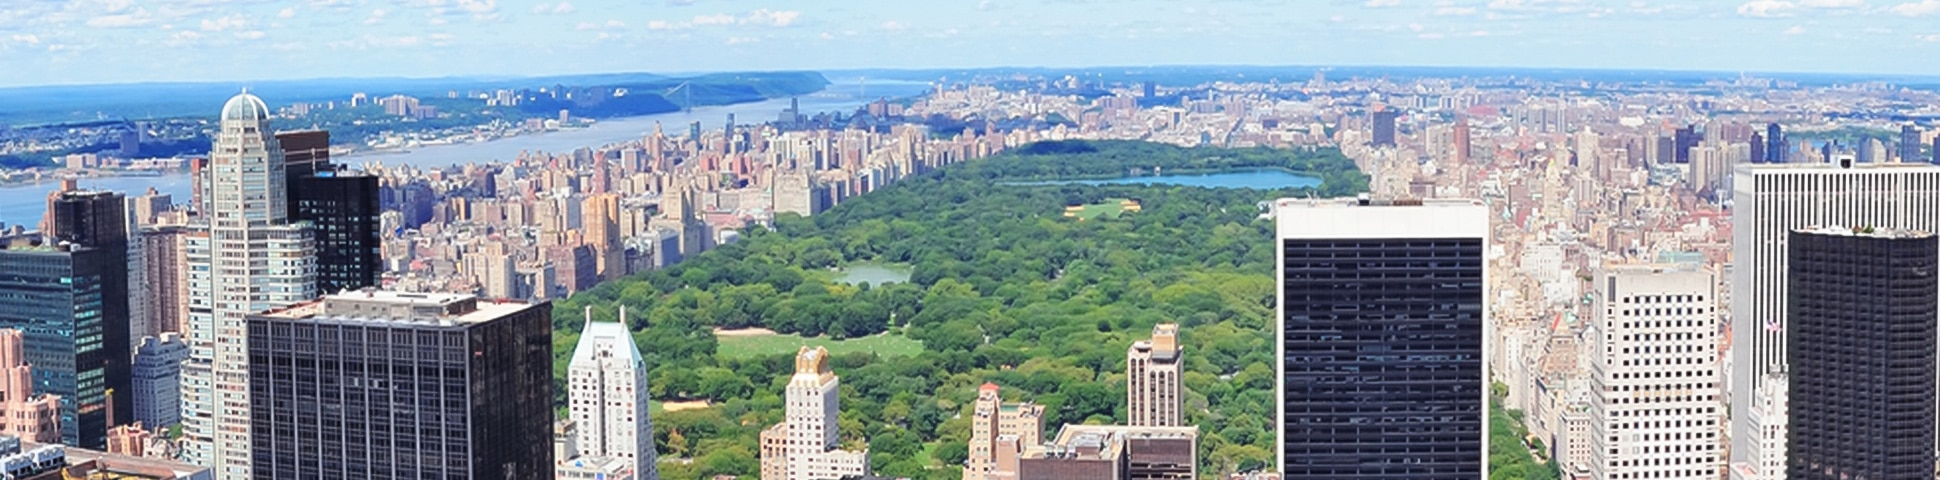 Panoramic views of Midtown of New York City and Central Park on city-walk in New York City